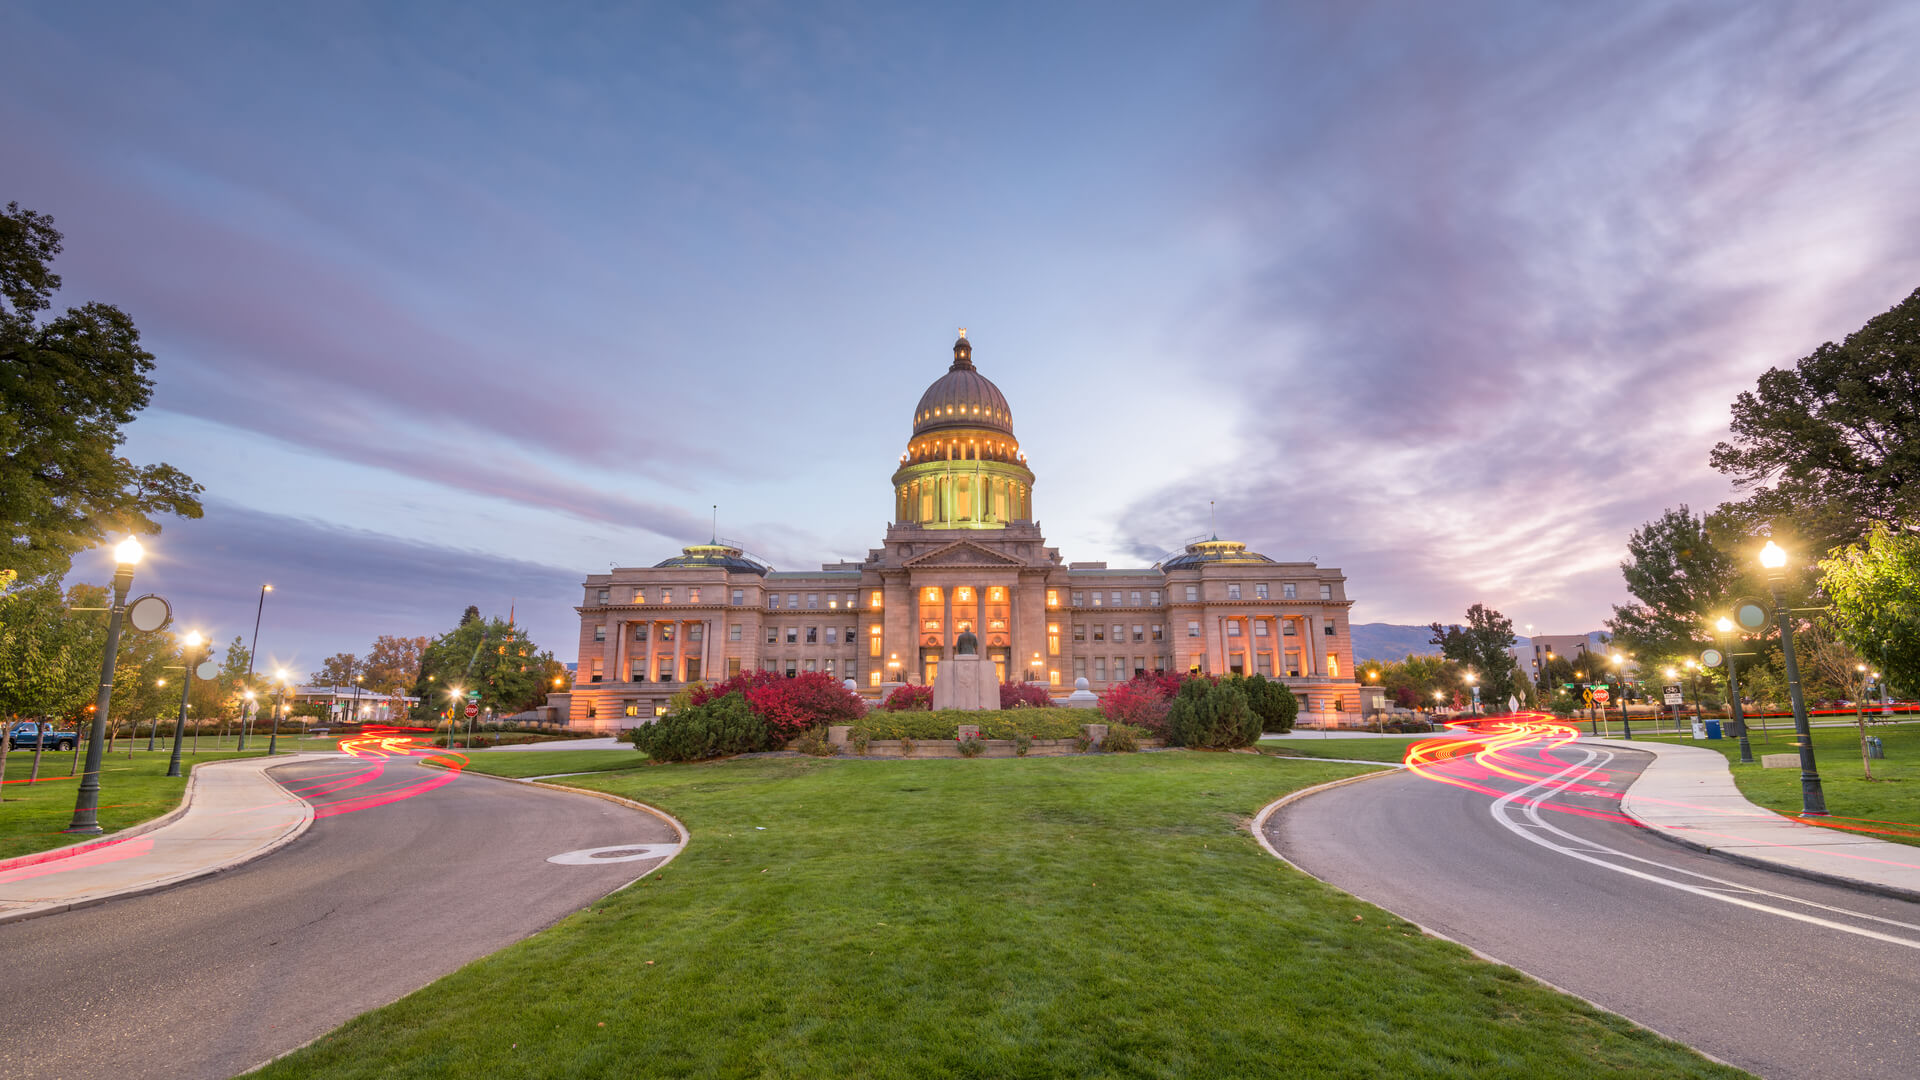 Idaho State Capitol building at dawn in Boise